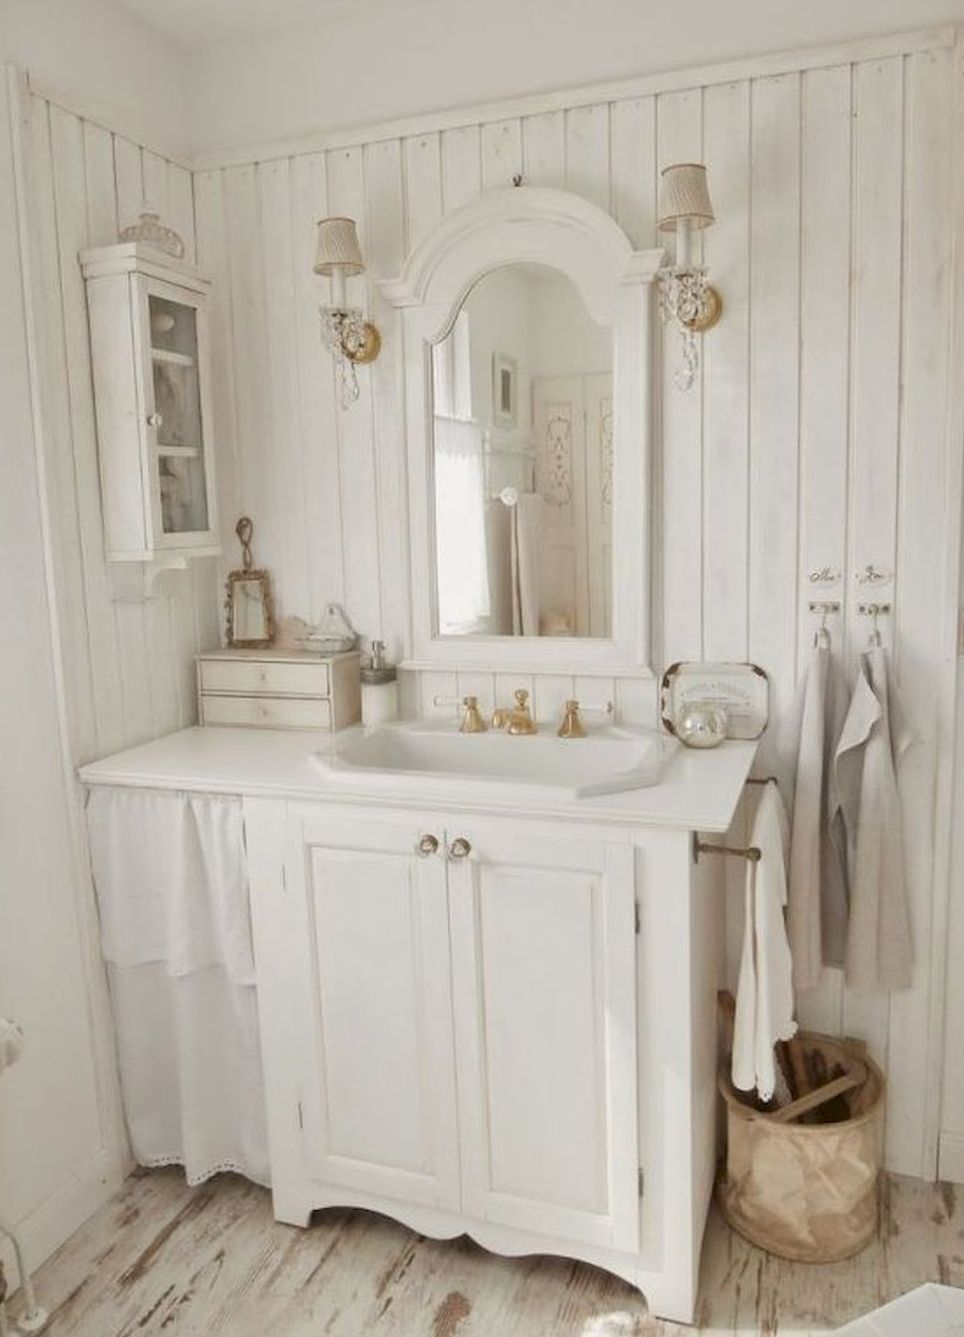 84 Comfy Cottage Bathroom Makeover Ideas | shabby style | Pinterest ...